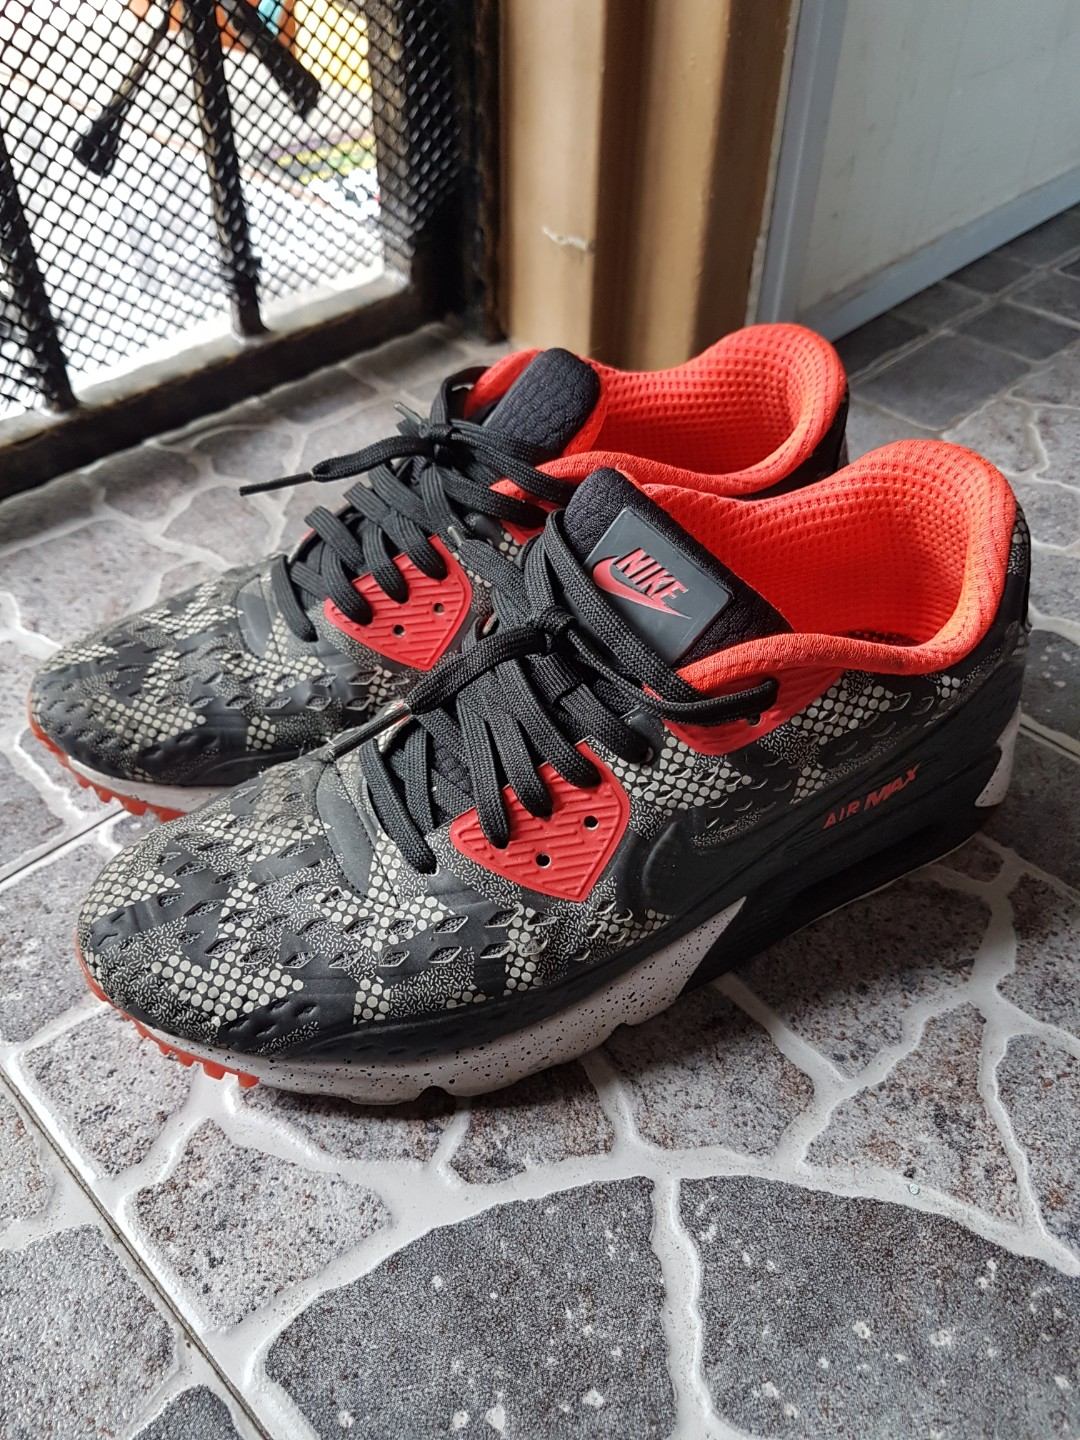 5b68a3561f Nike Air Max, Men's Fashion, Footwear, Sneakers on Carousell